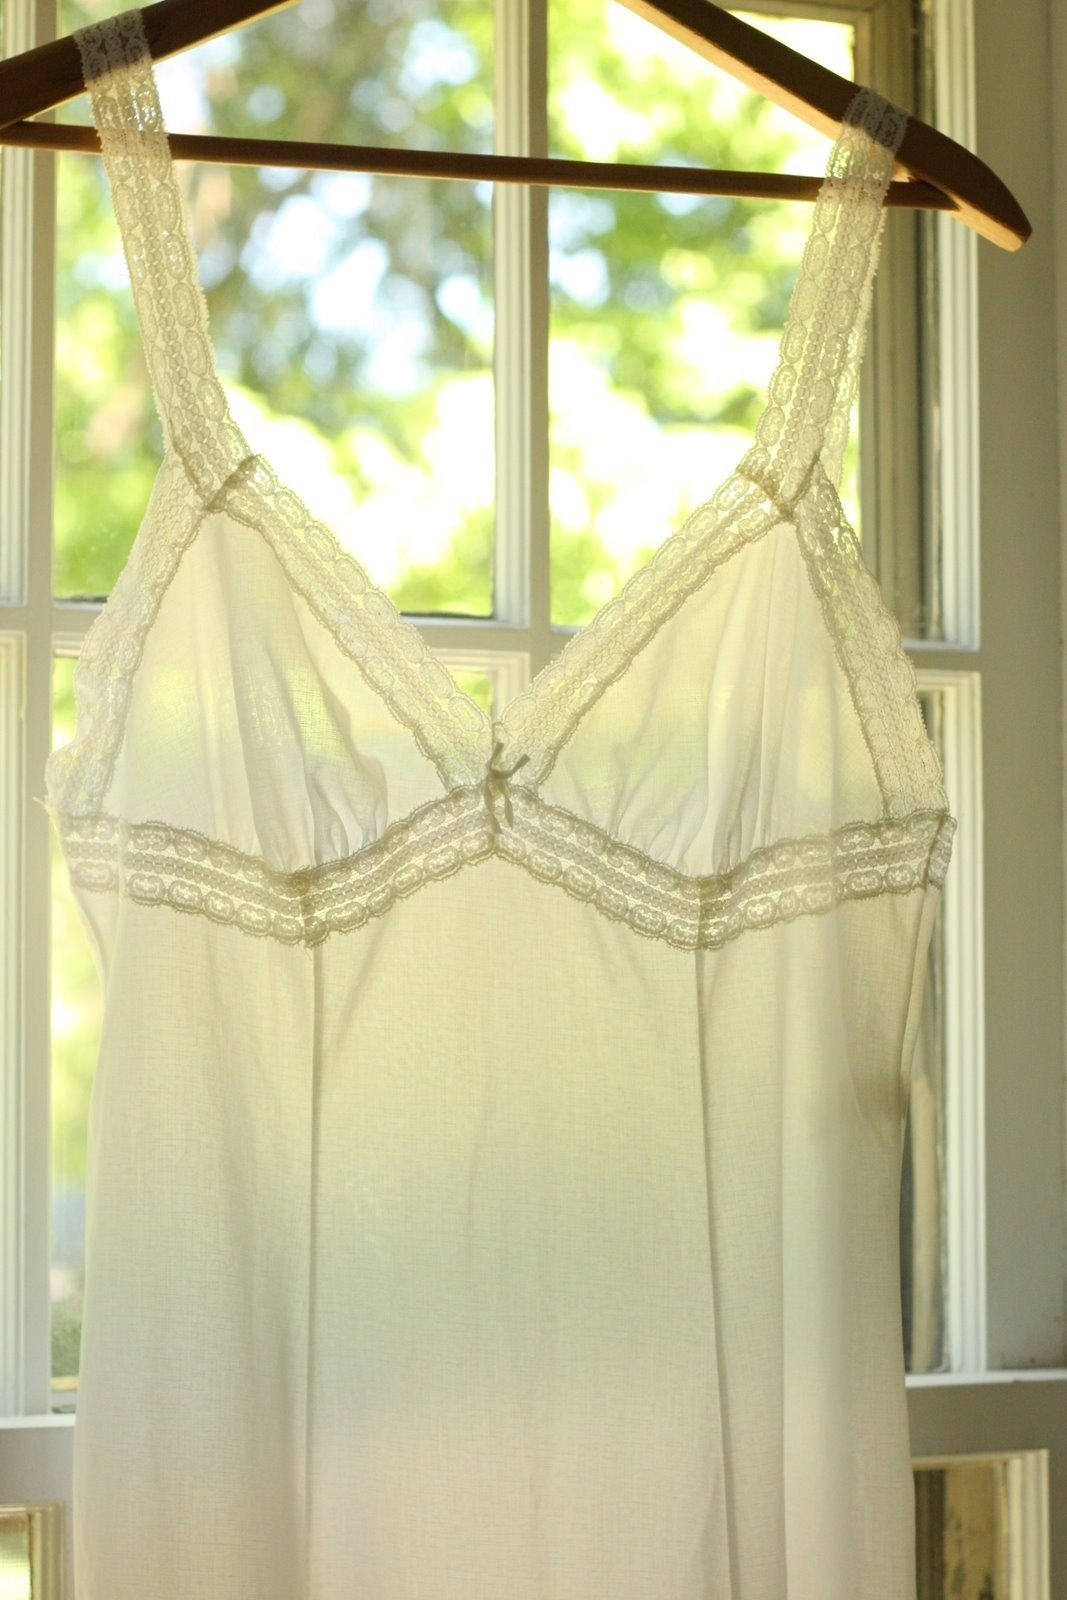 underpretties on Etsy - Underpretties :  atin underwear nighties vintage